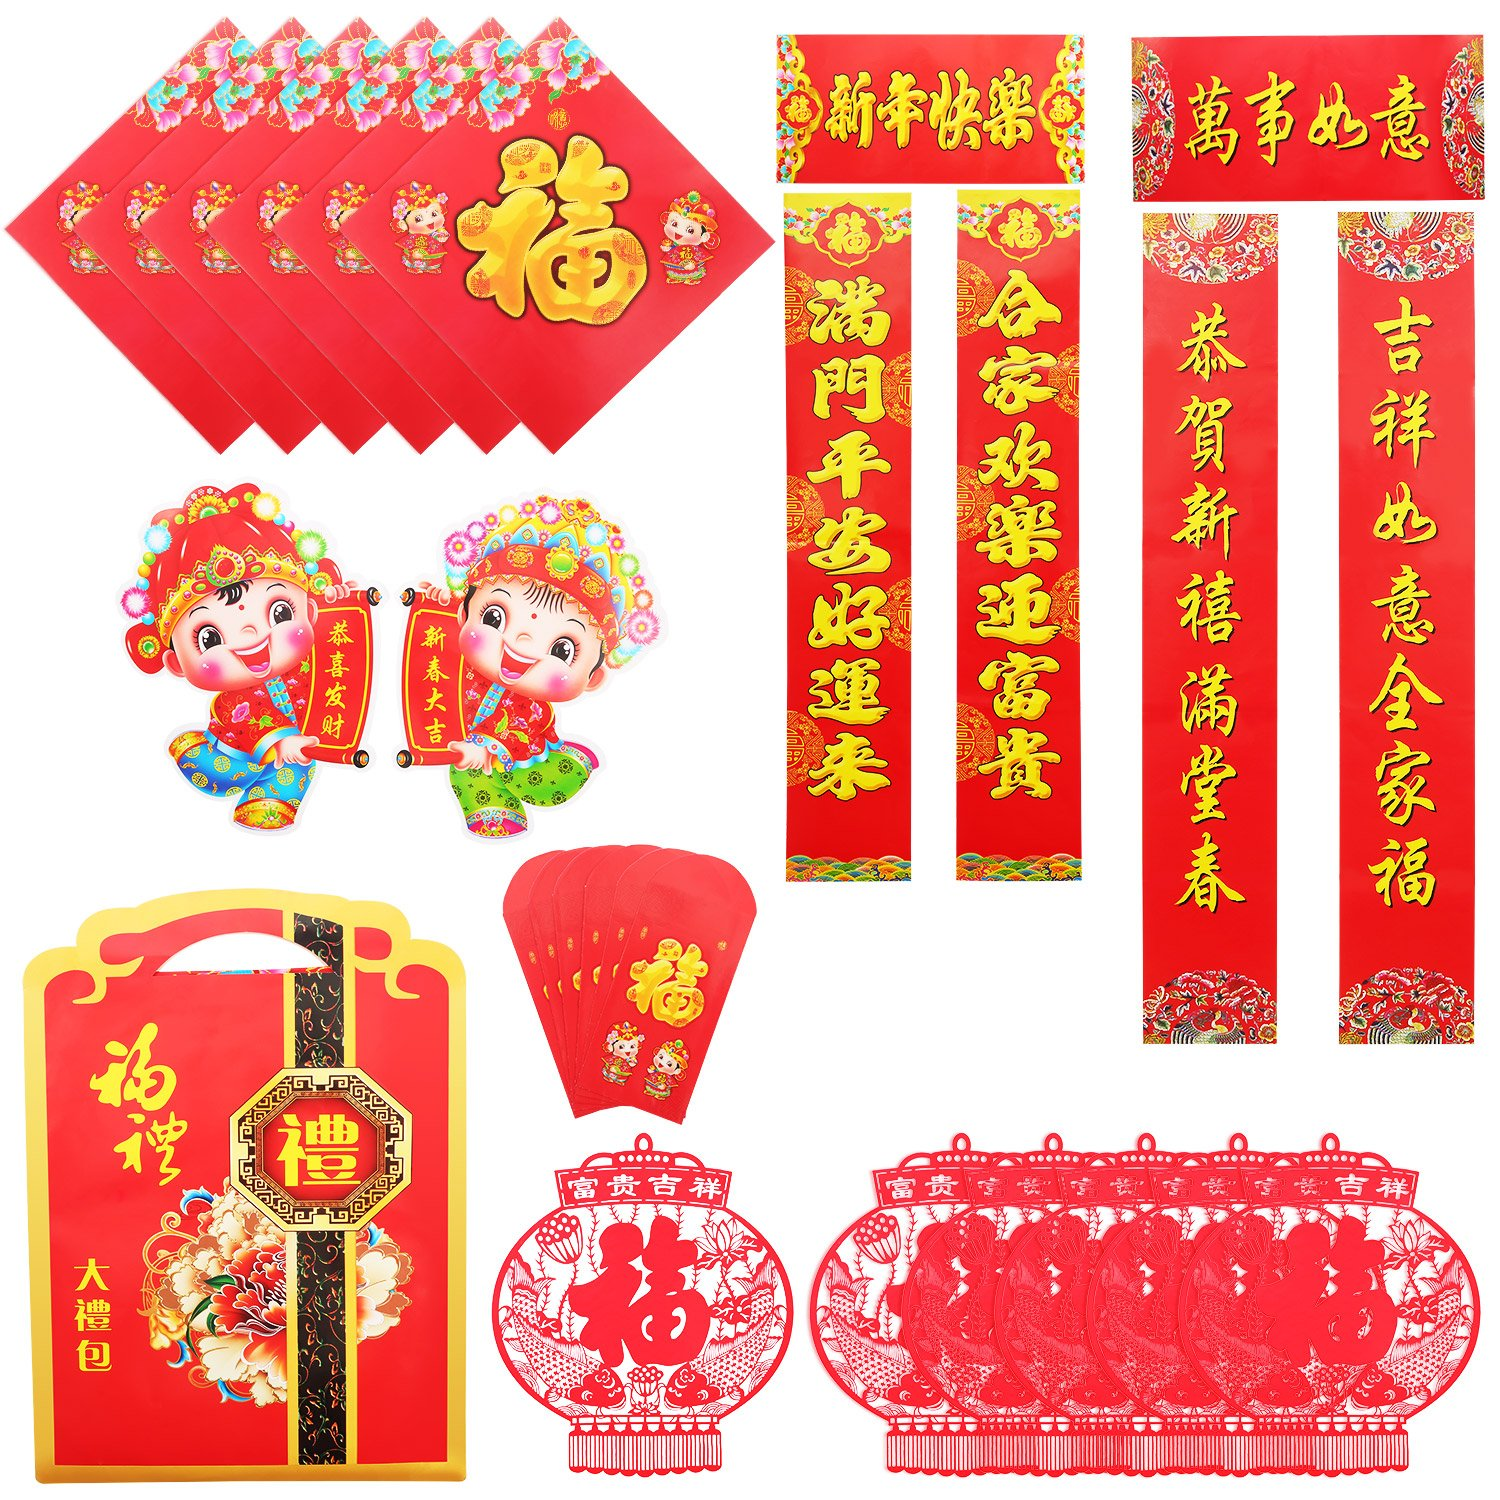 Mtlee Chinese Couplet Decorative Gift Kit for 2019 Chinese New Year Spring Festival, Includes Chun Lian, Fu Characters, Chinese Fu Stickers, Door Stickers, Red Envelopes, FU Bag (Set of 27 Pieces) by Mtlee (Image #1)